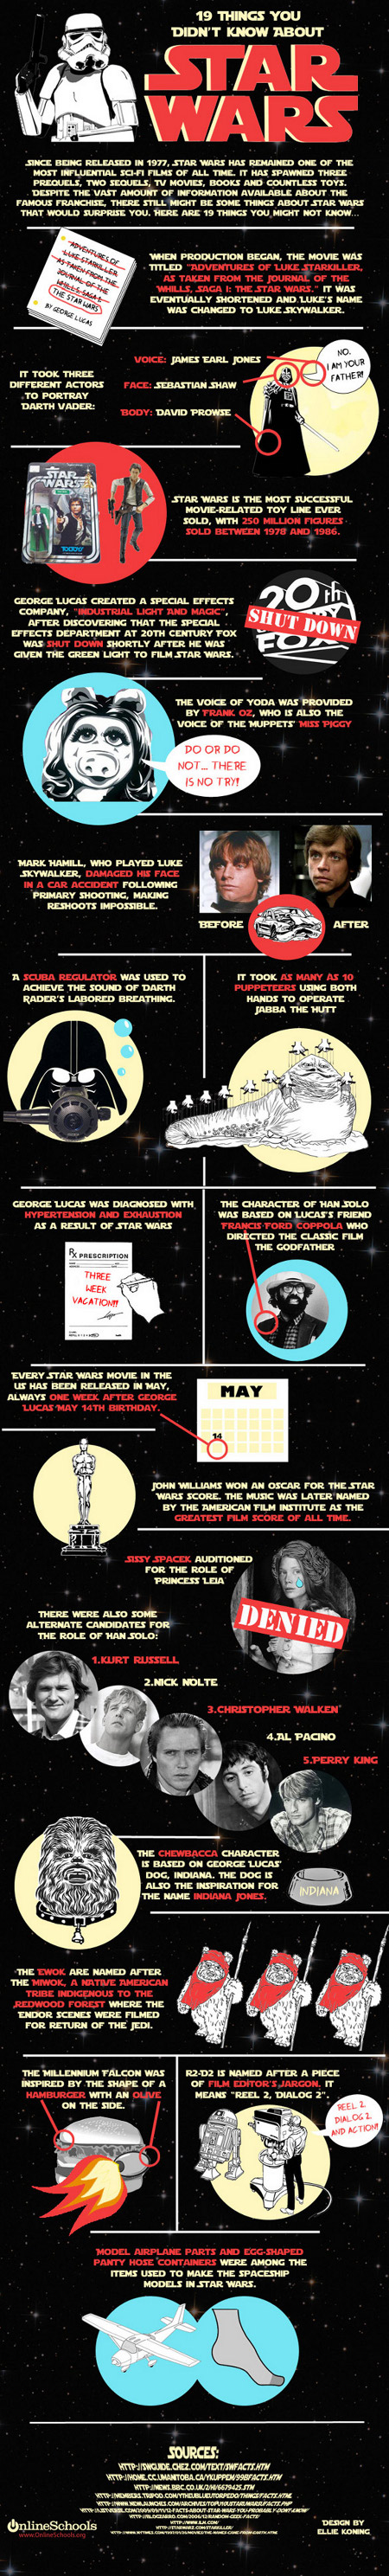 george lucas s star wars franchise infographic 19 random facts w